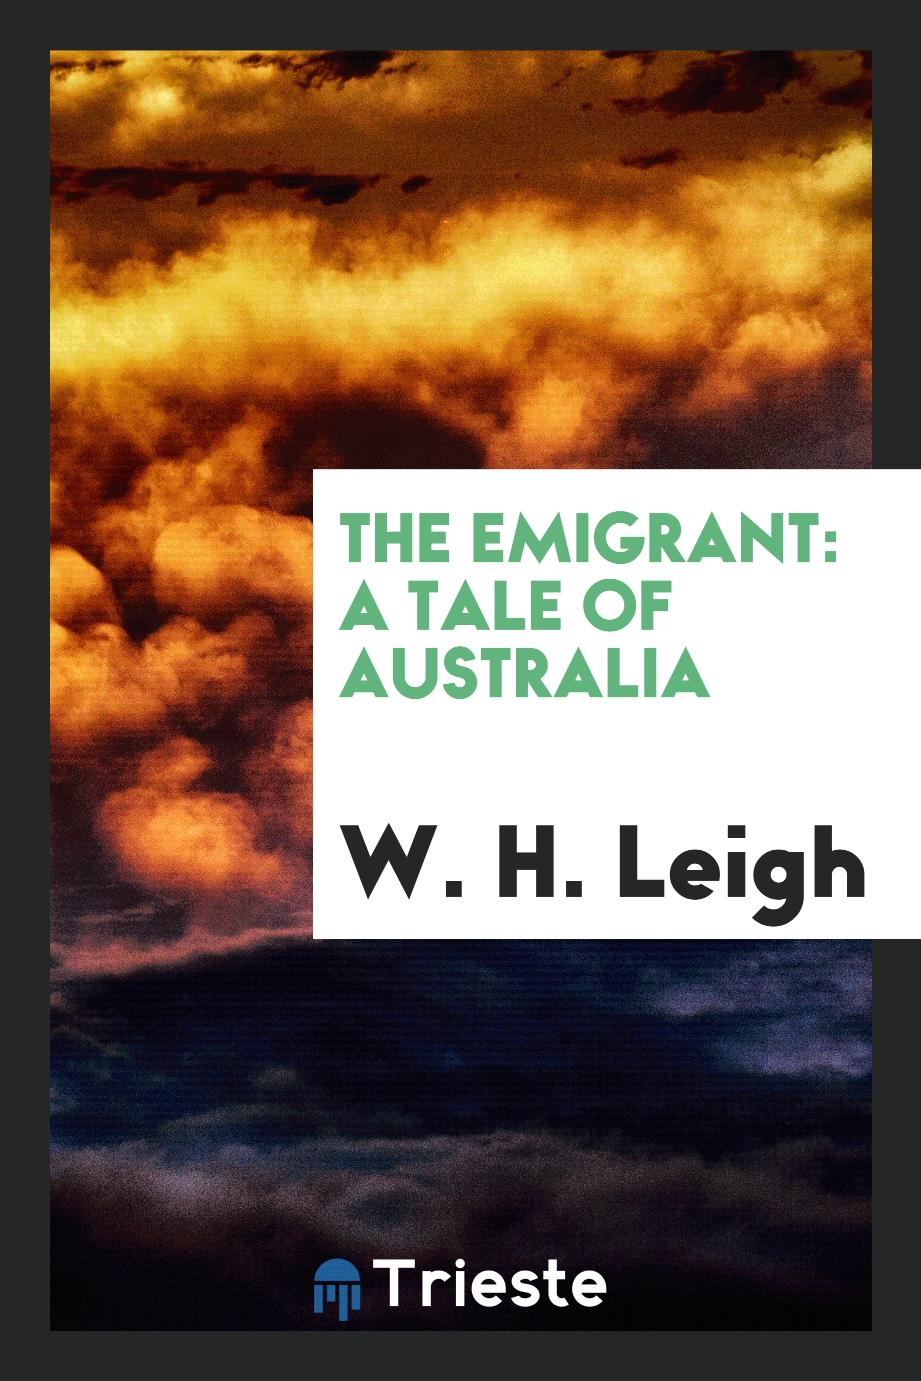 The Emigrant: A Tale of Australia